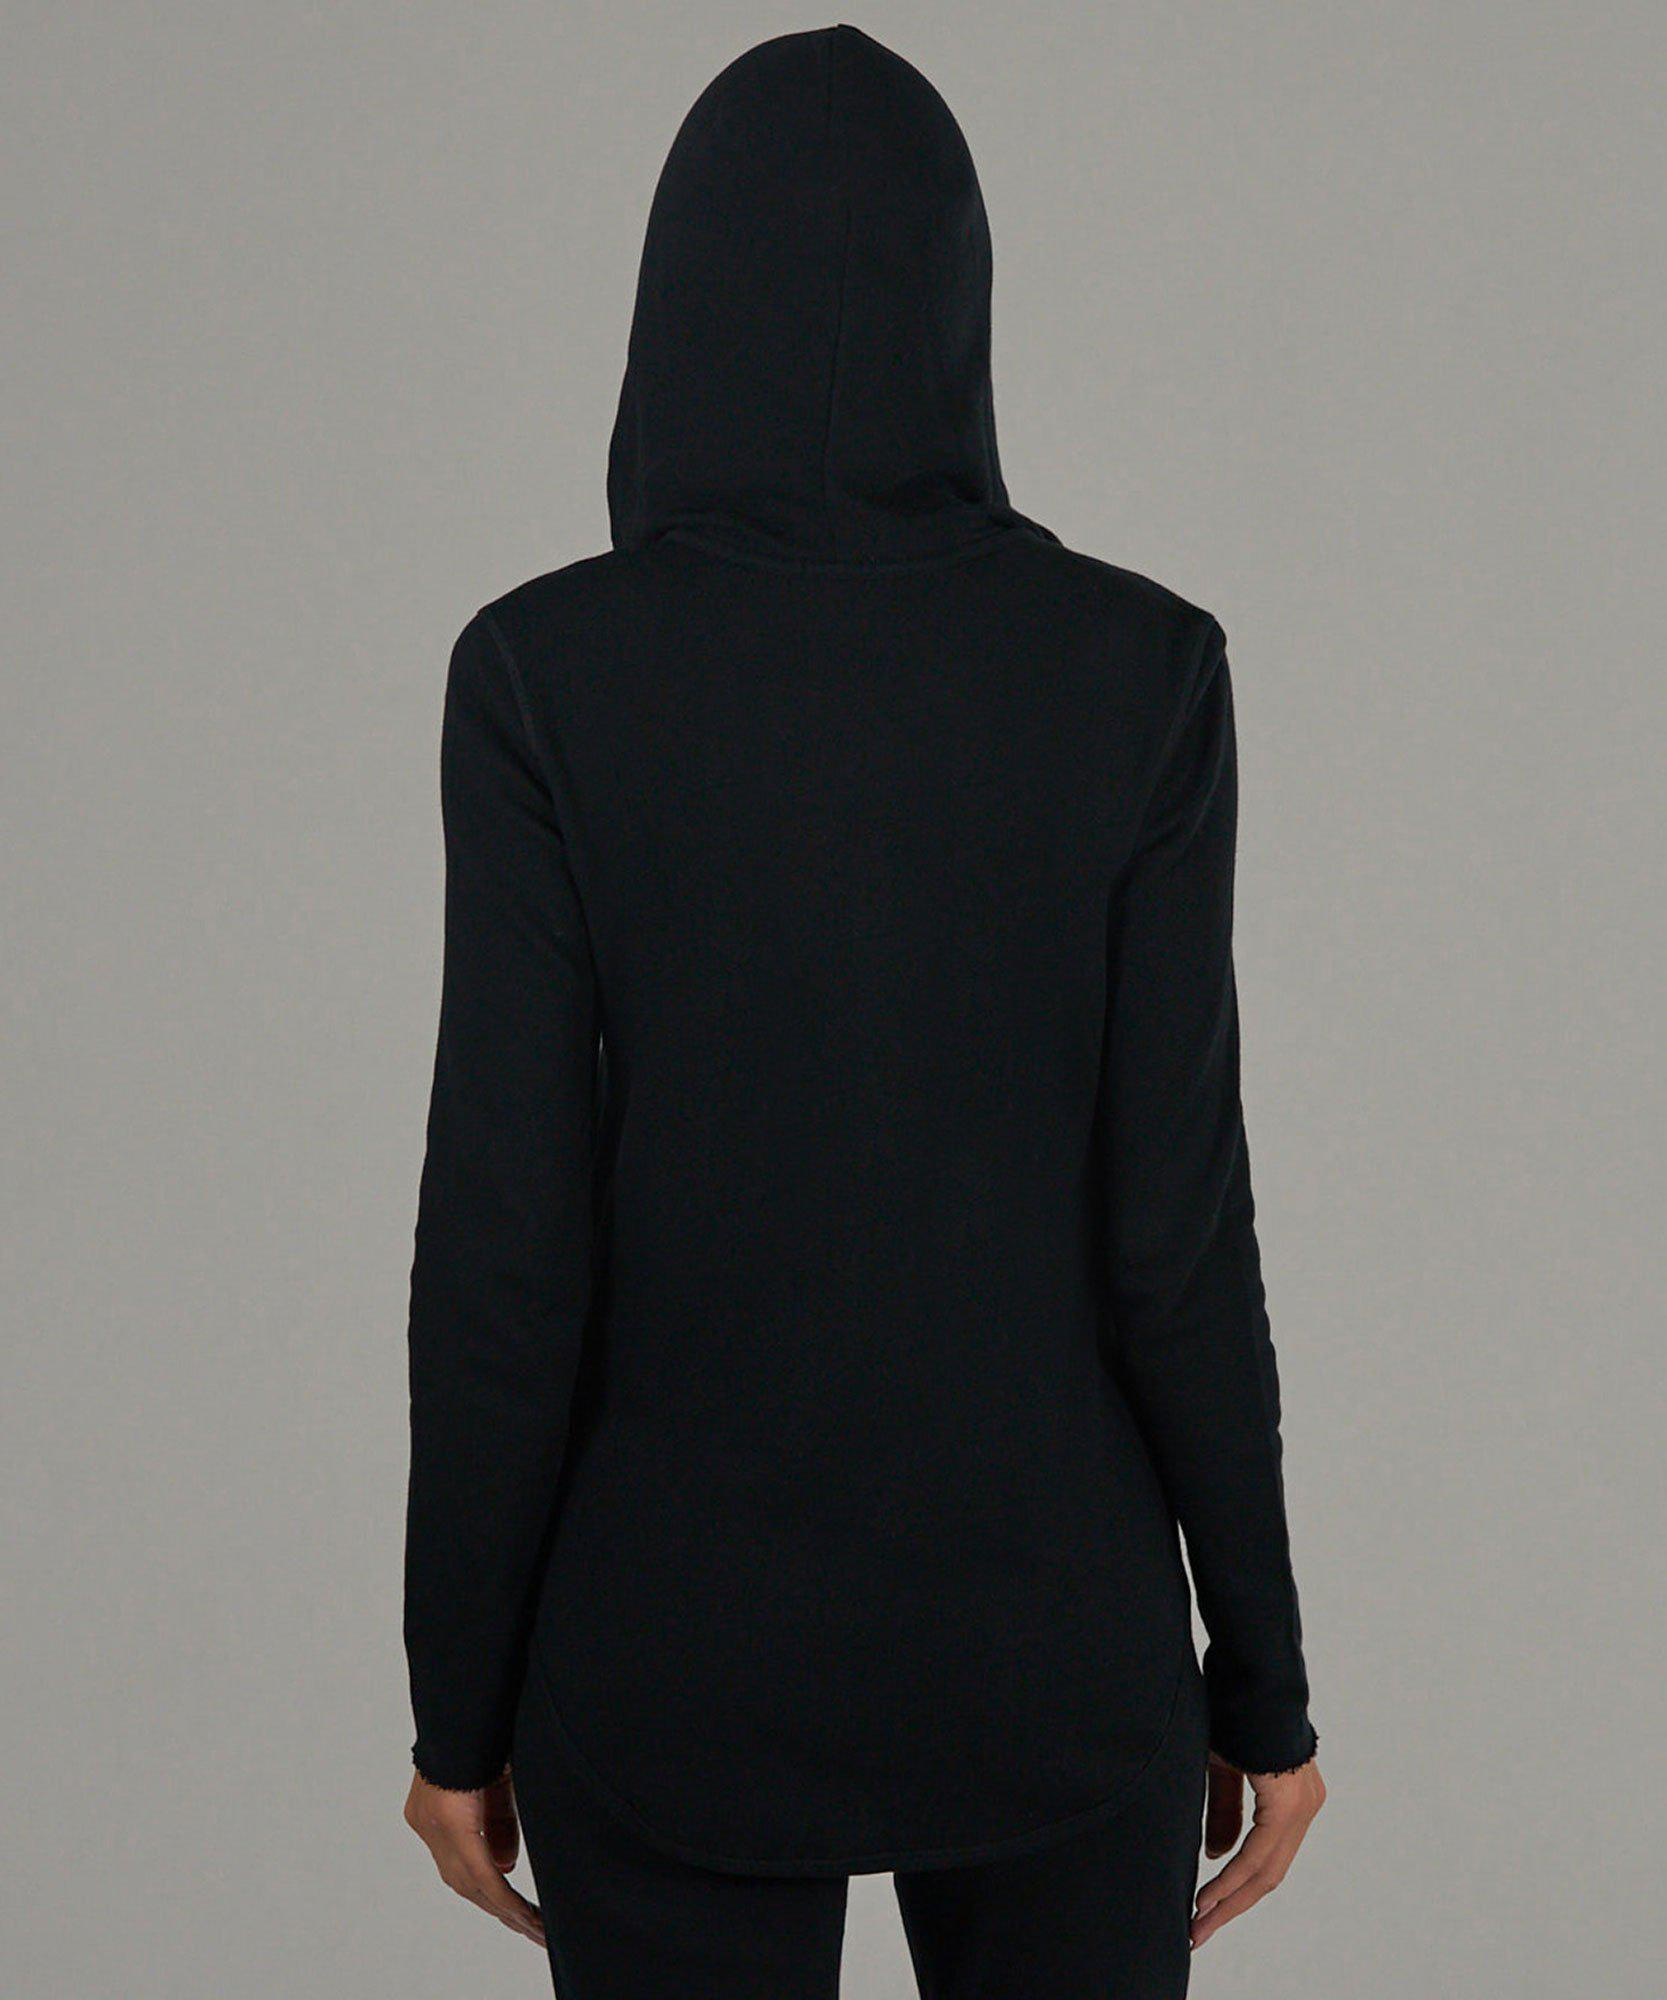 French Terry Zip-Up Hoodie - Black 2